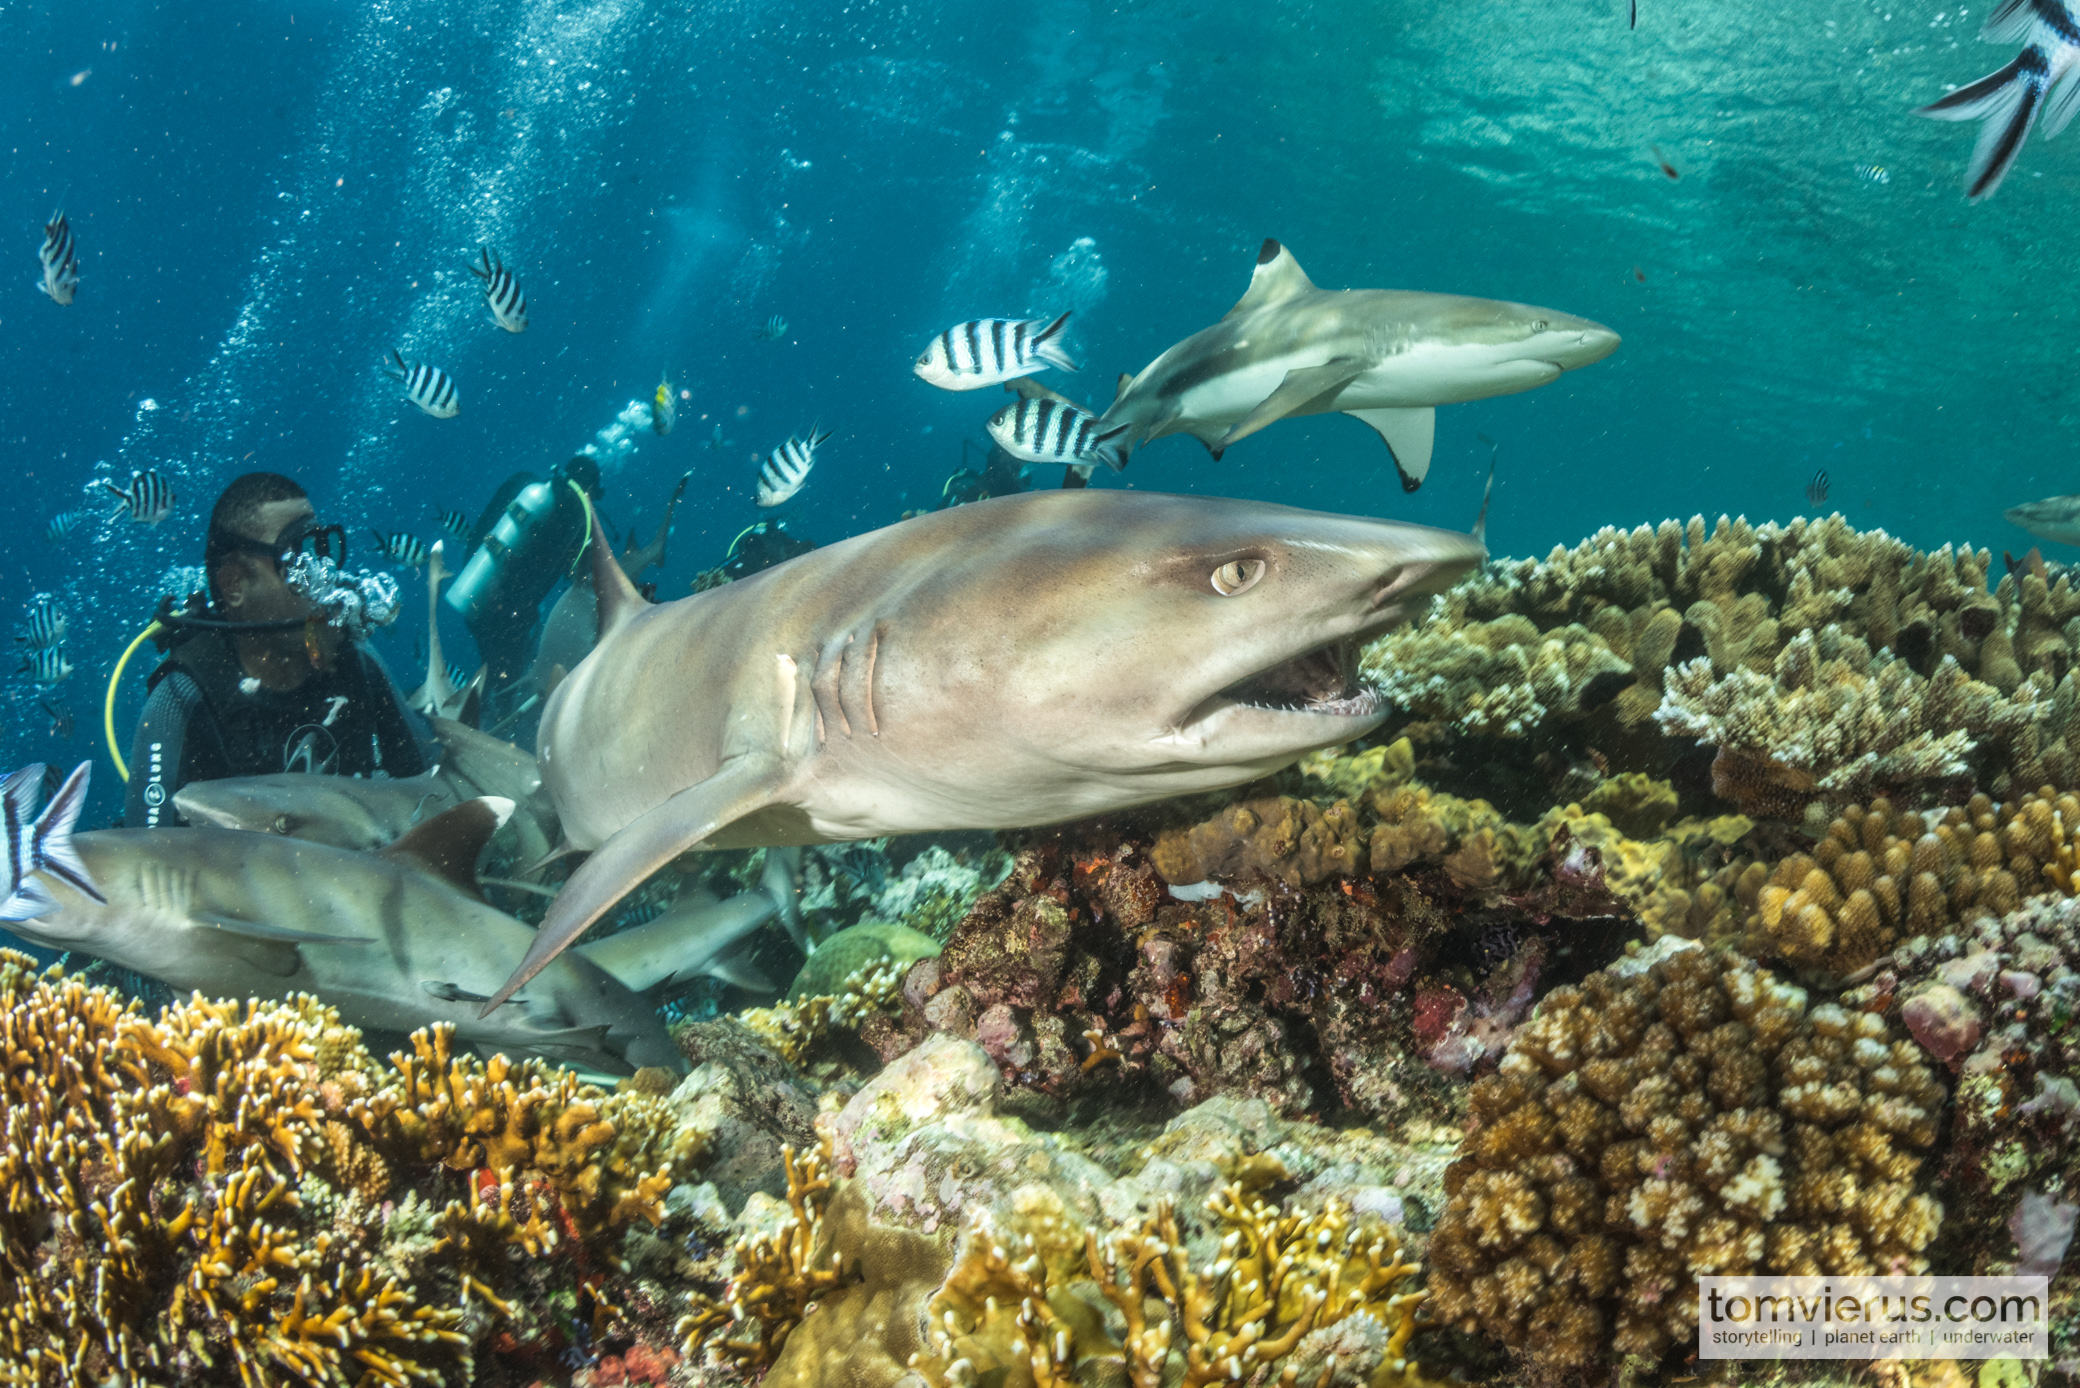 Fiji Shark Diving, Pacific, Photography, Sharks